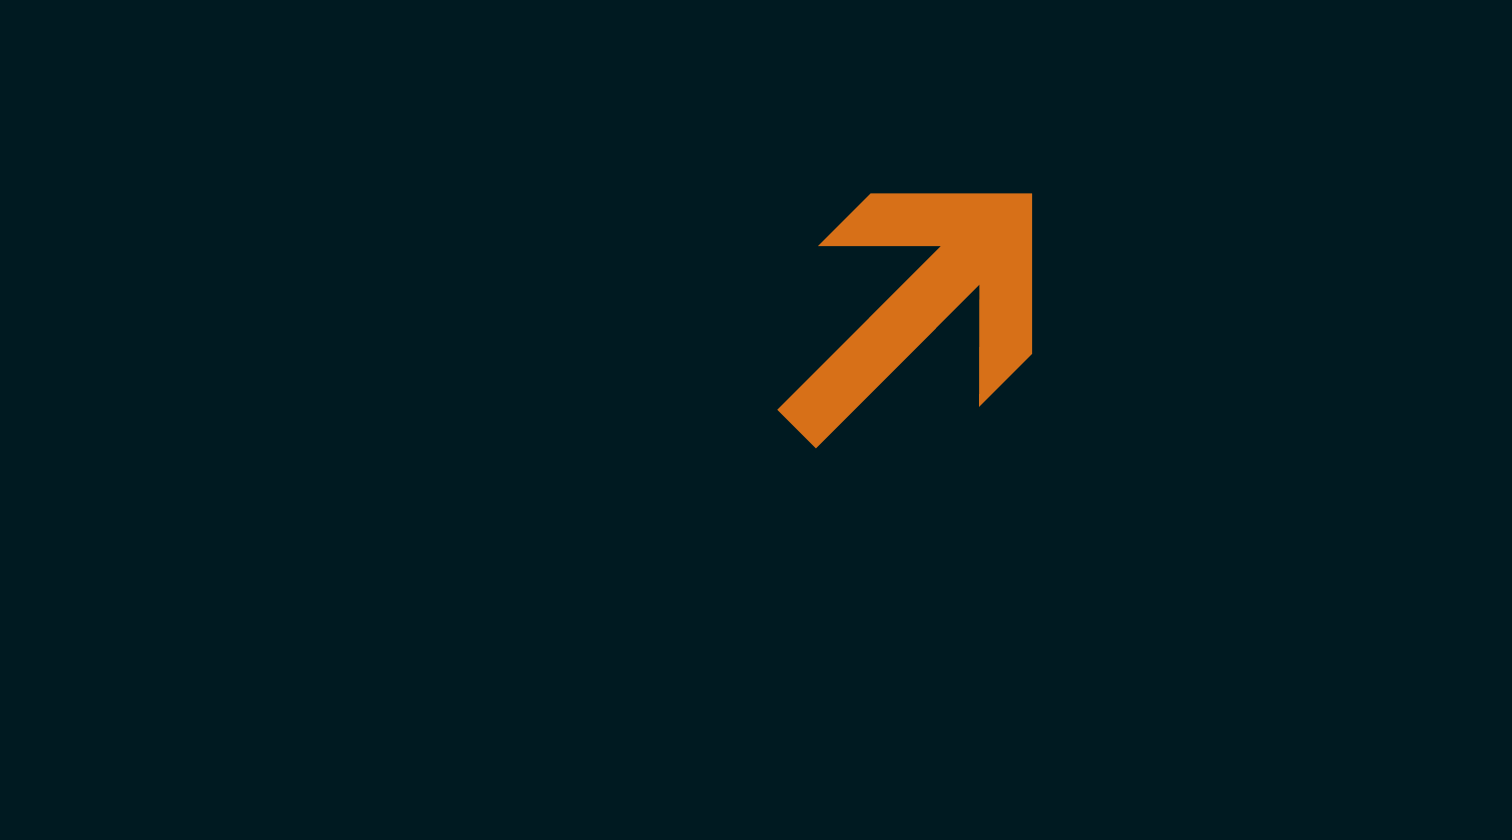 Orange arrow pointing up and right against a black background